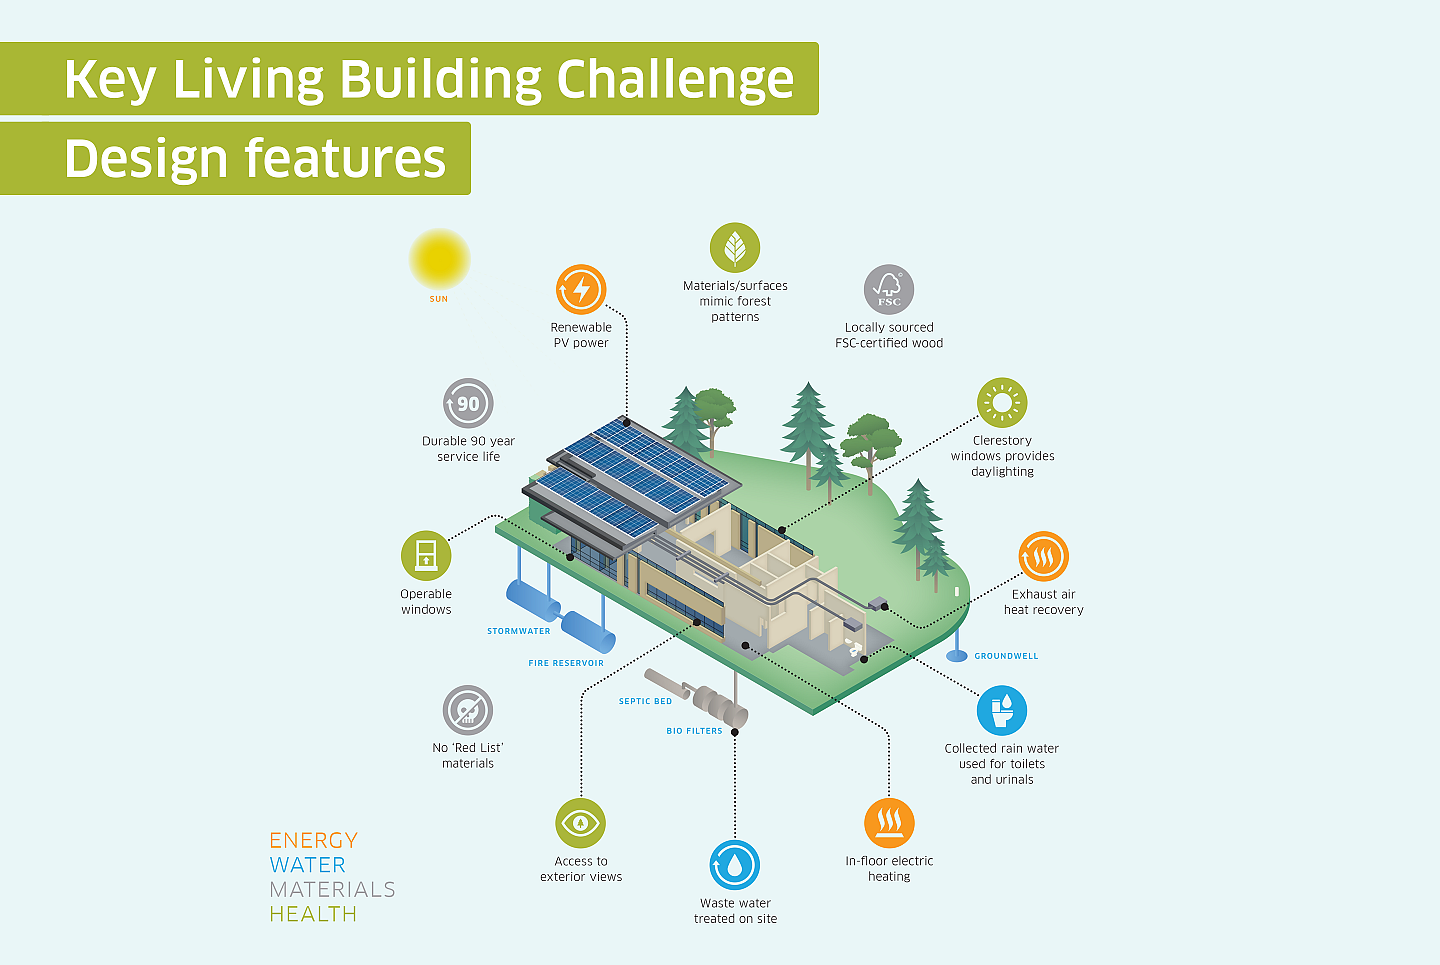 Living Building Challenge features at the York Region Forest Stewardship Education Centre